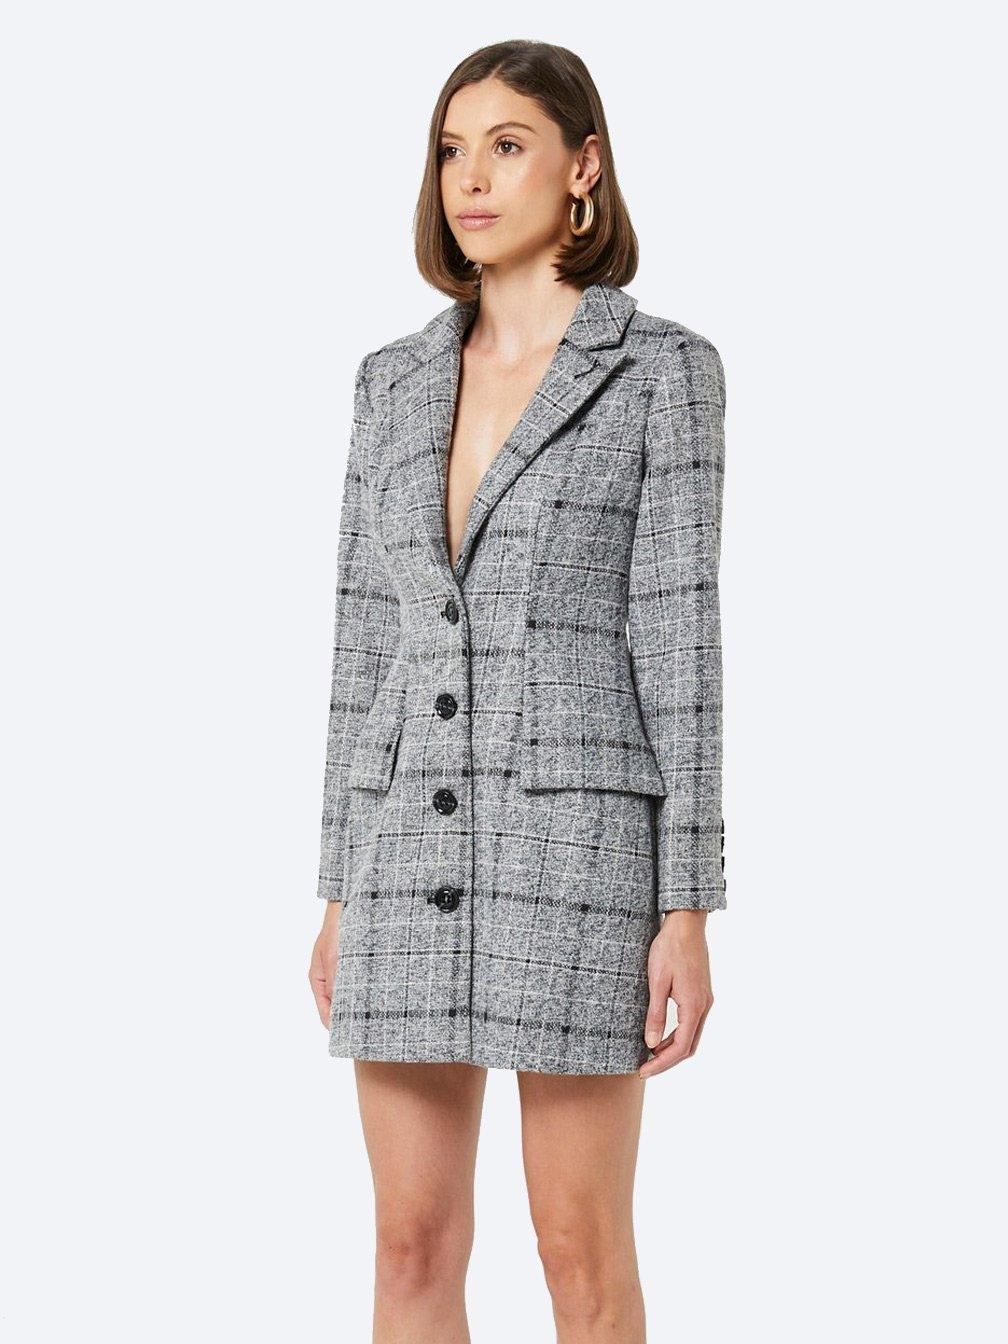 Yeltuor - ELLIATT - Dresses - ELLIATT PRATO CHECK BLAZER DRESS -  -